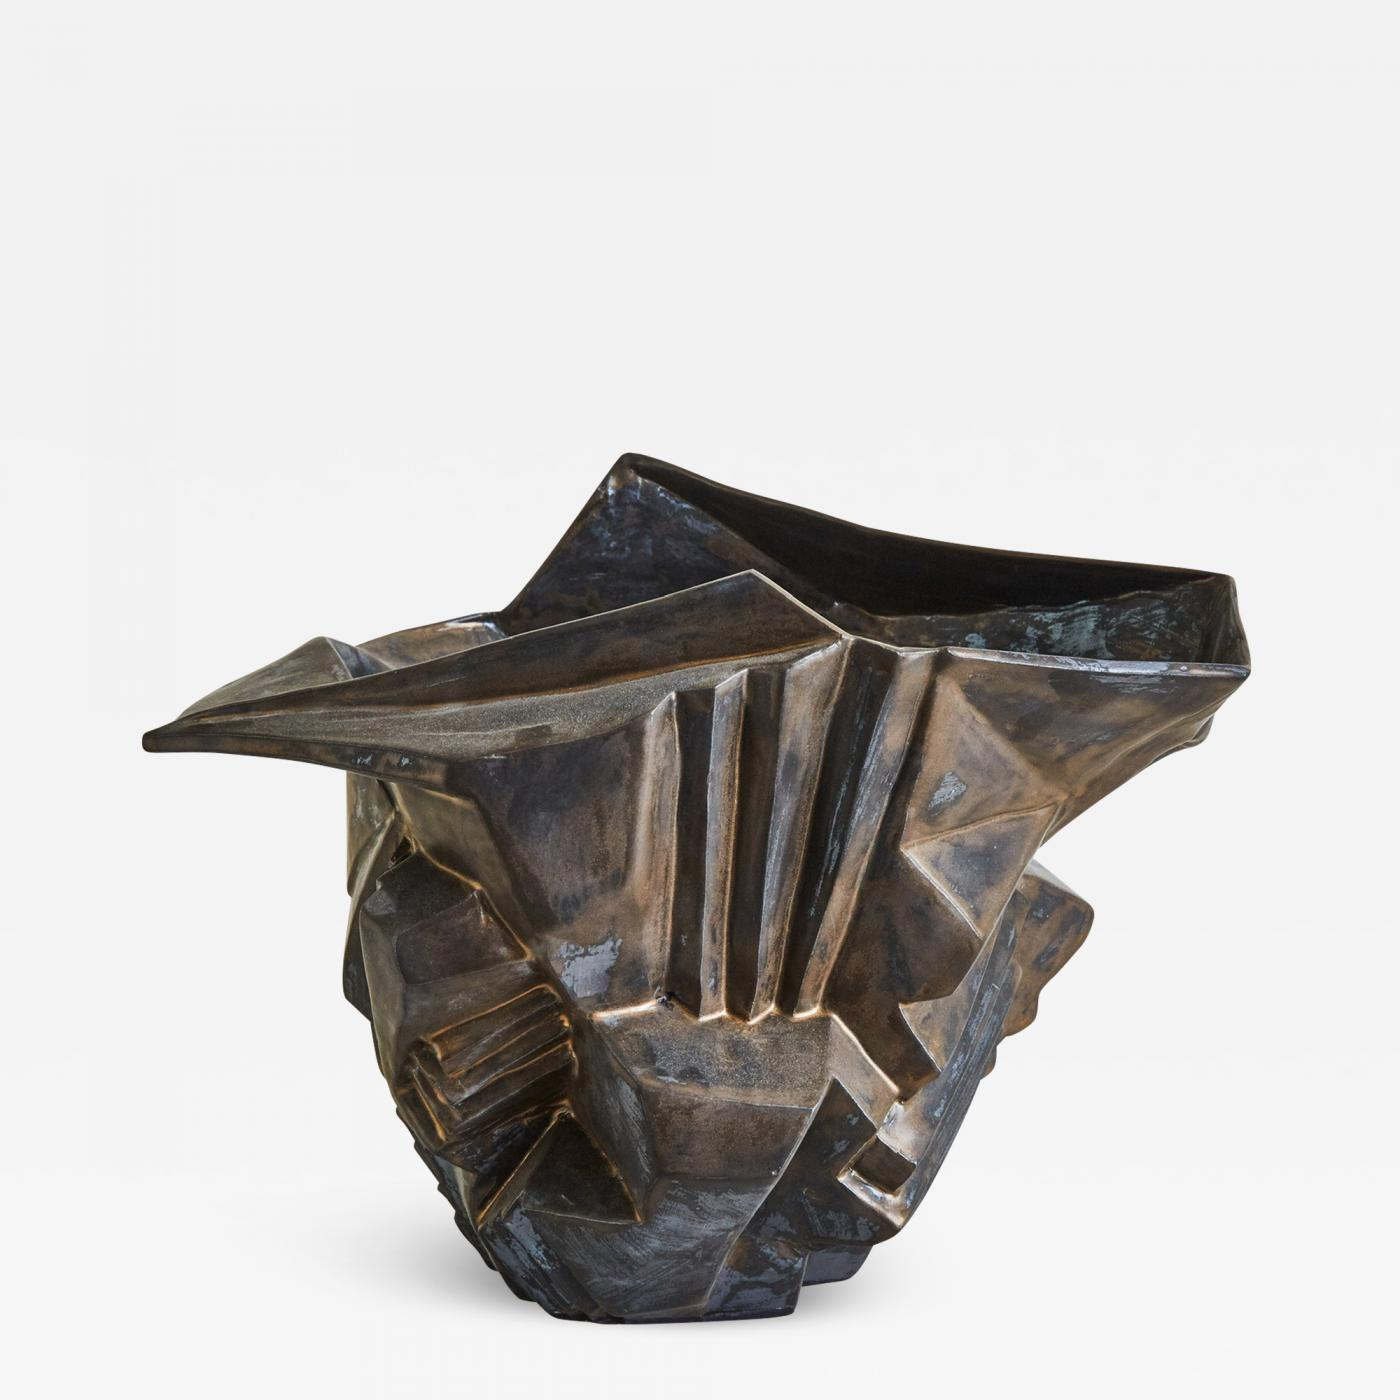 Wheel-thrown and manipulated cubist vessel in white stoneware.